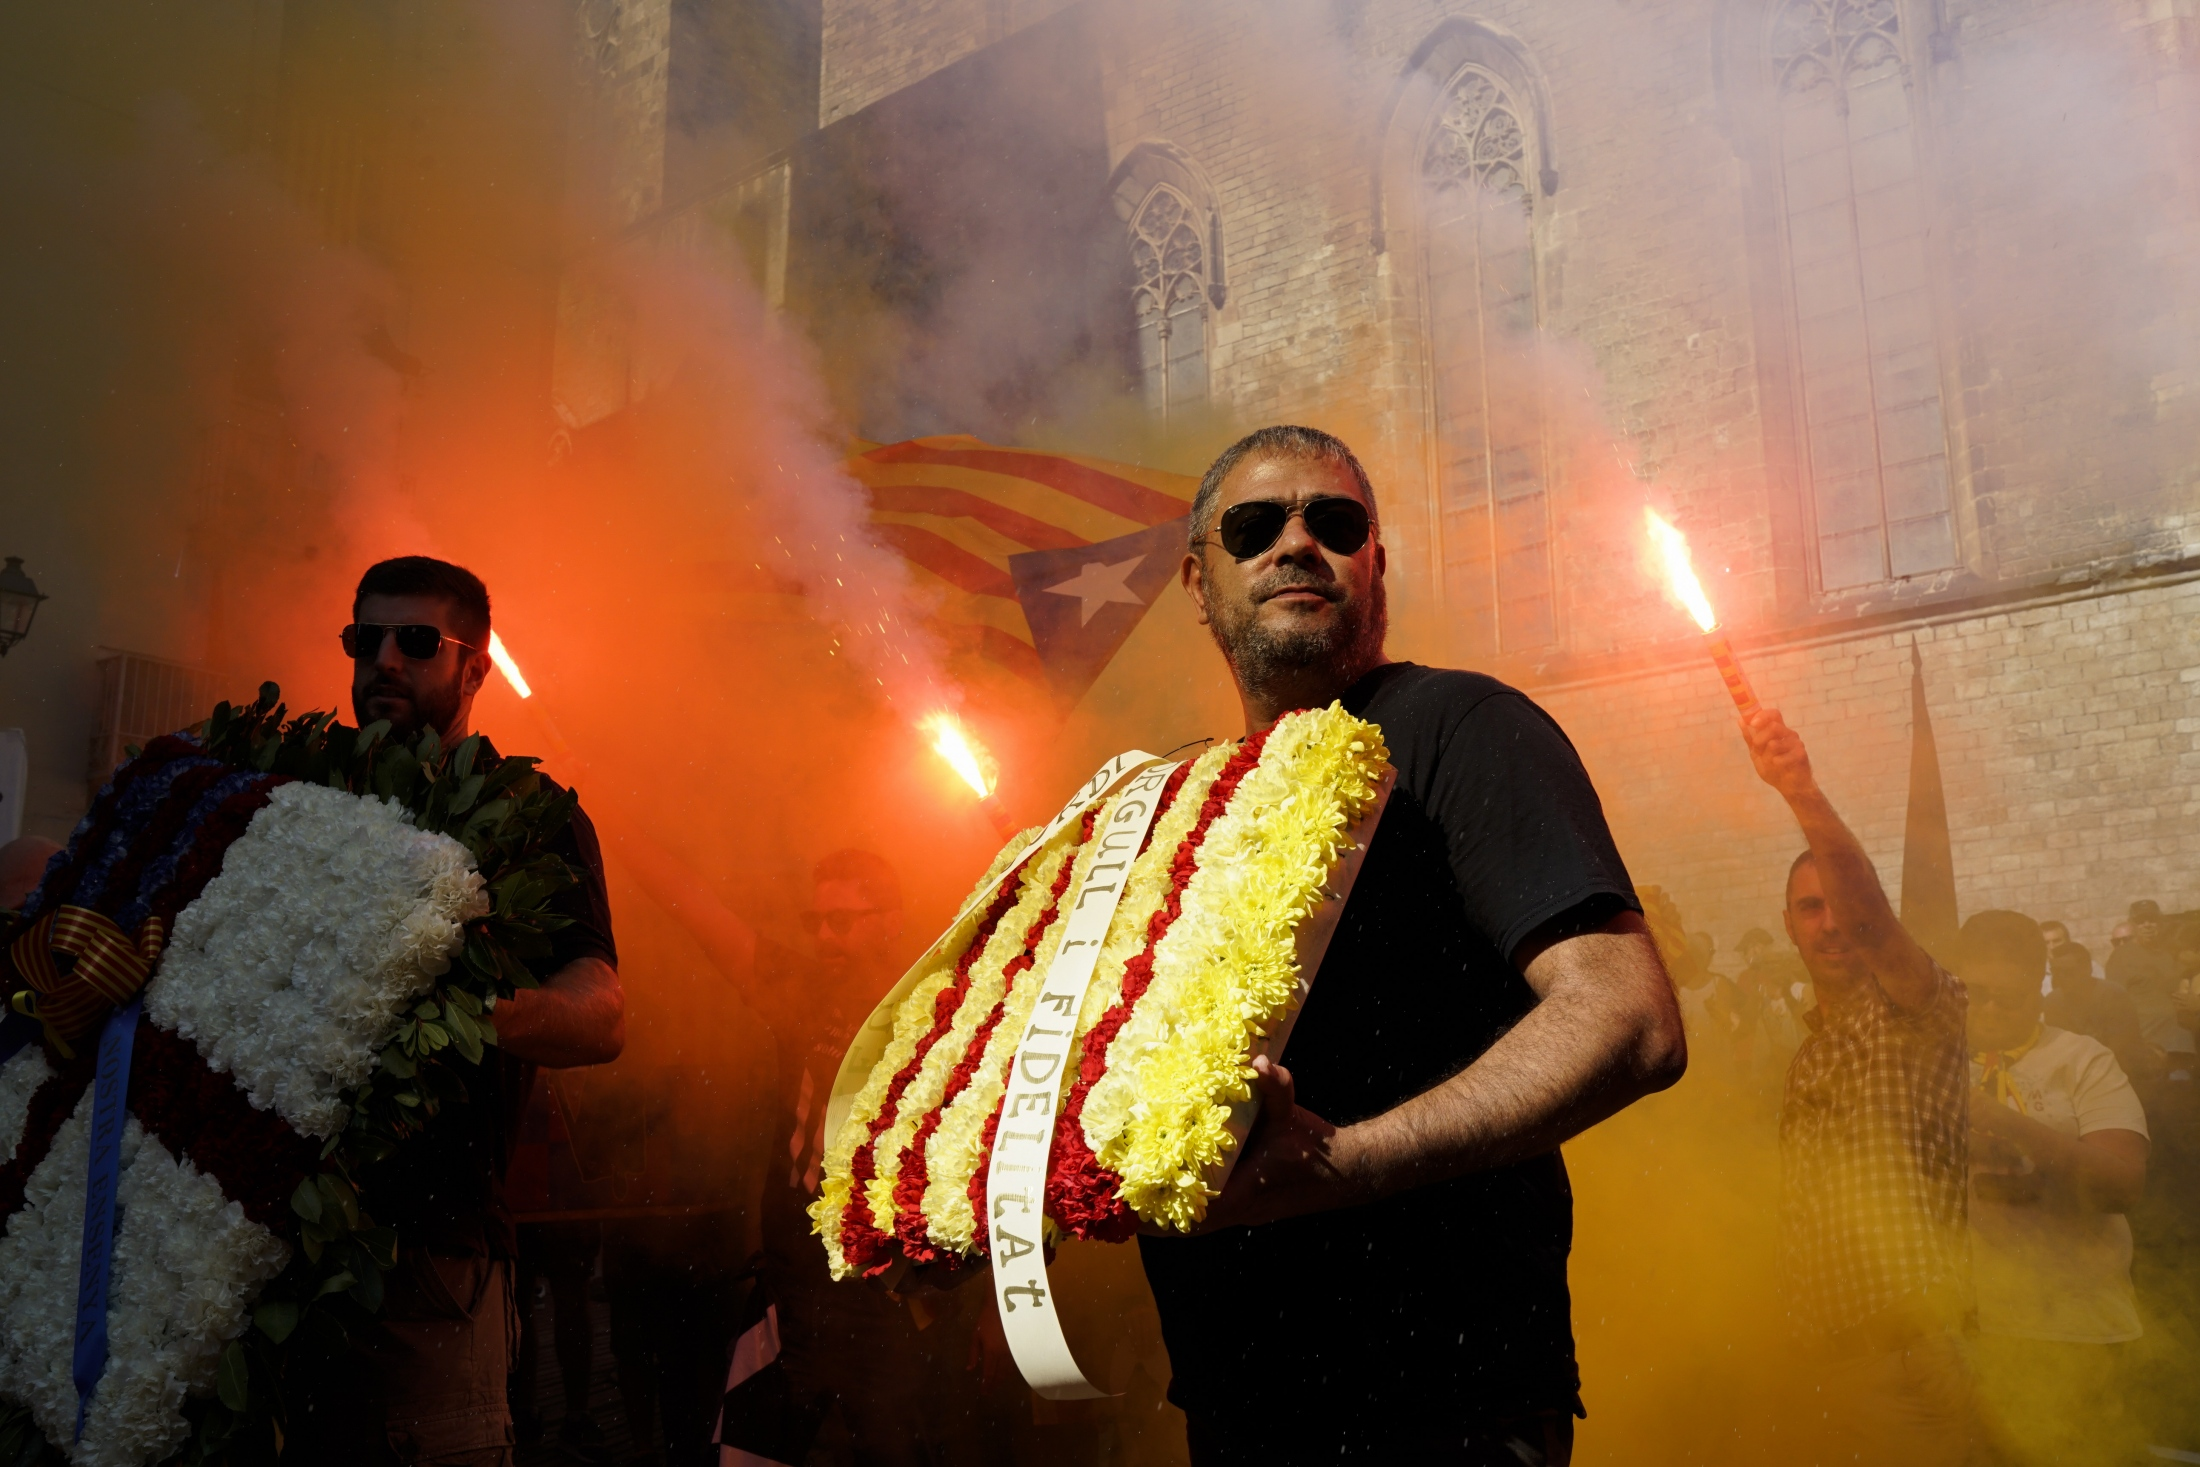 "(AP Photo/Daniel Cole) Demonstrators, some of them holding flares, march carrying ""esteladas"" or independence flags during the Catalan National Day in Barcelona, Spain, Tuesday, Sept. 11, 2018. Catalan separatist authorities have made a call to flood the streets of Barcelona later on Tuesday in a march calling for independence from Spain. The traditional march on the Sept. 11 ""Diada,"" which remembers the fall of the Catalan capital to Spanish forces in 1714, is expected to attract this year hundreds of thousands of secession sympathizers."